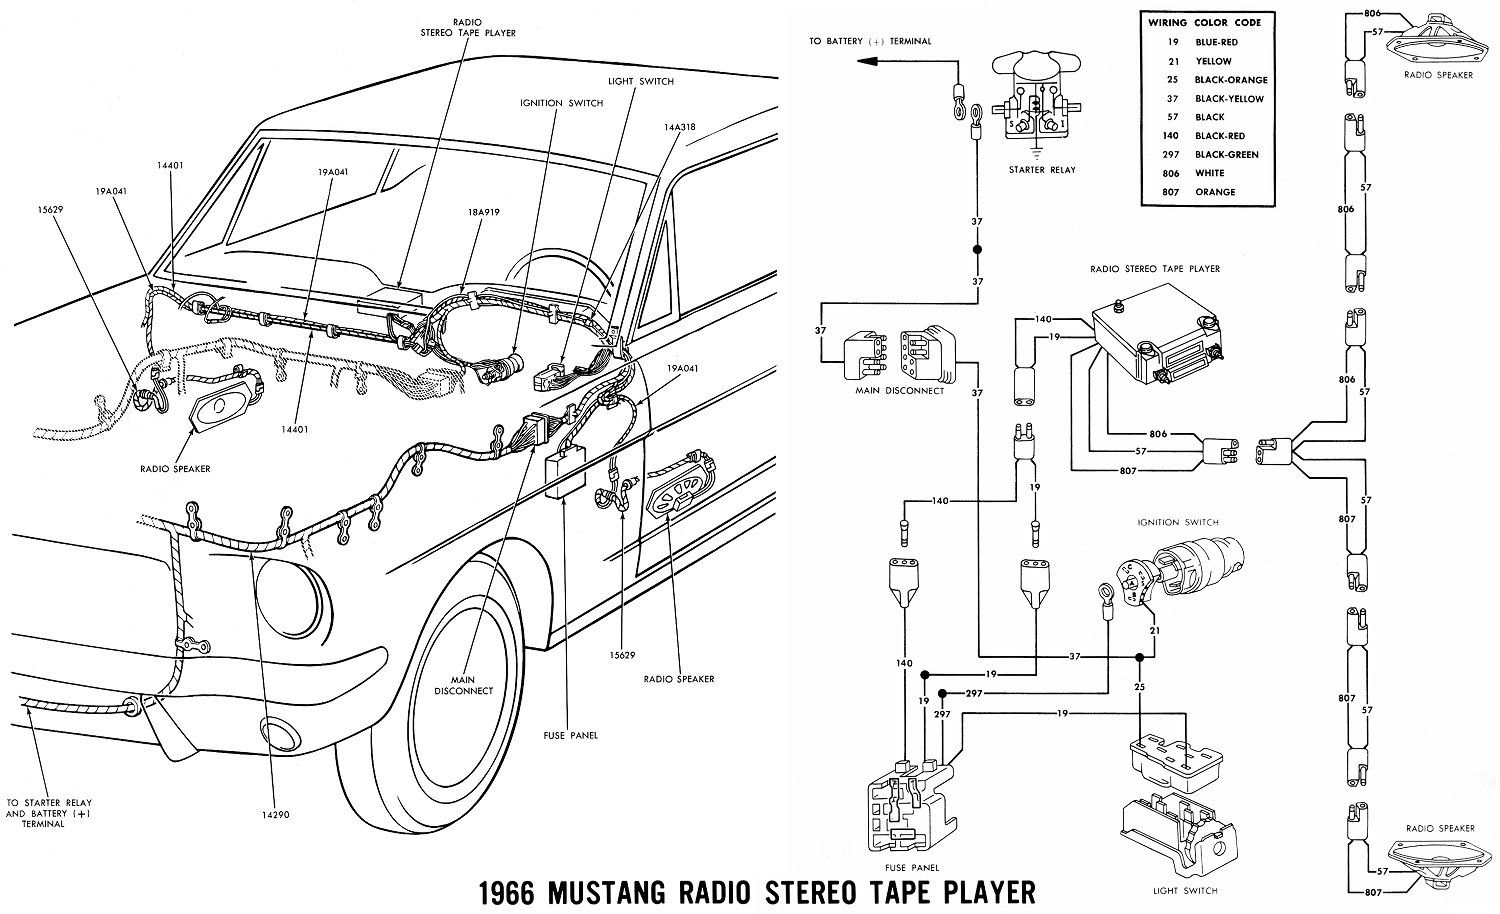 67 Mustang Radio Wiring Diagram Wiring Diagram New Launch Wire A Launch Wire A Weimaranerzampadargento It